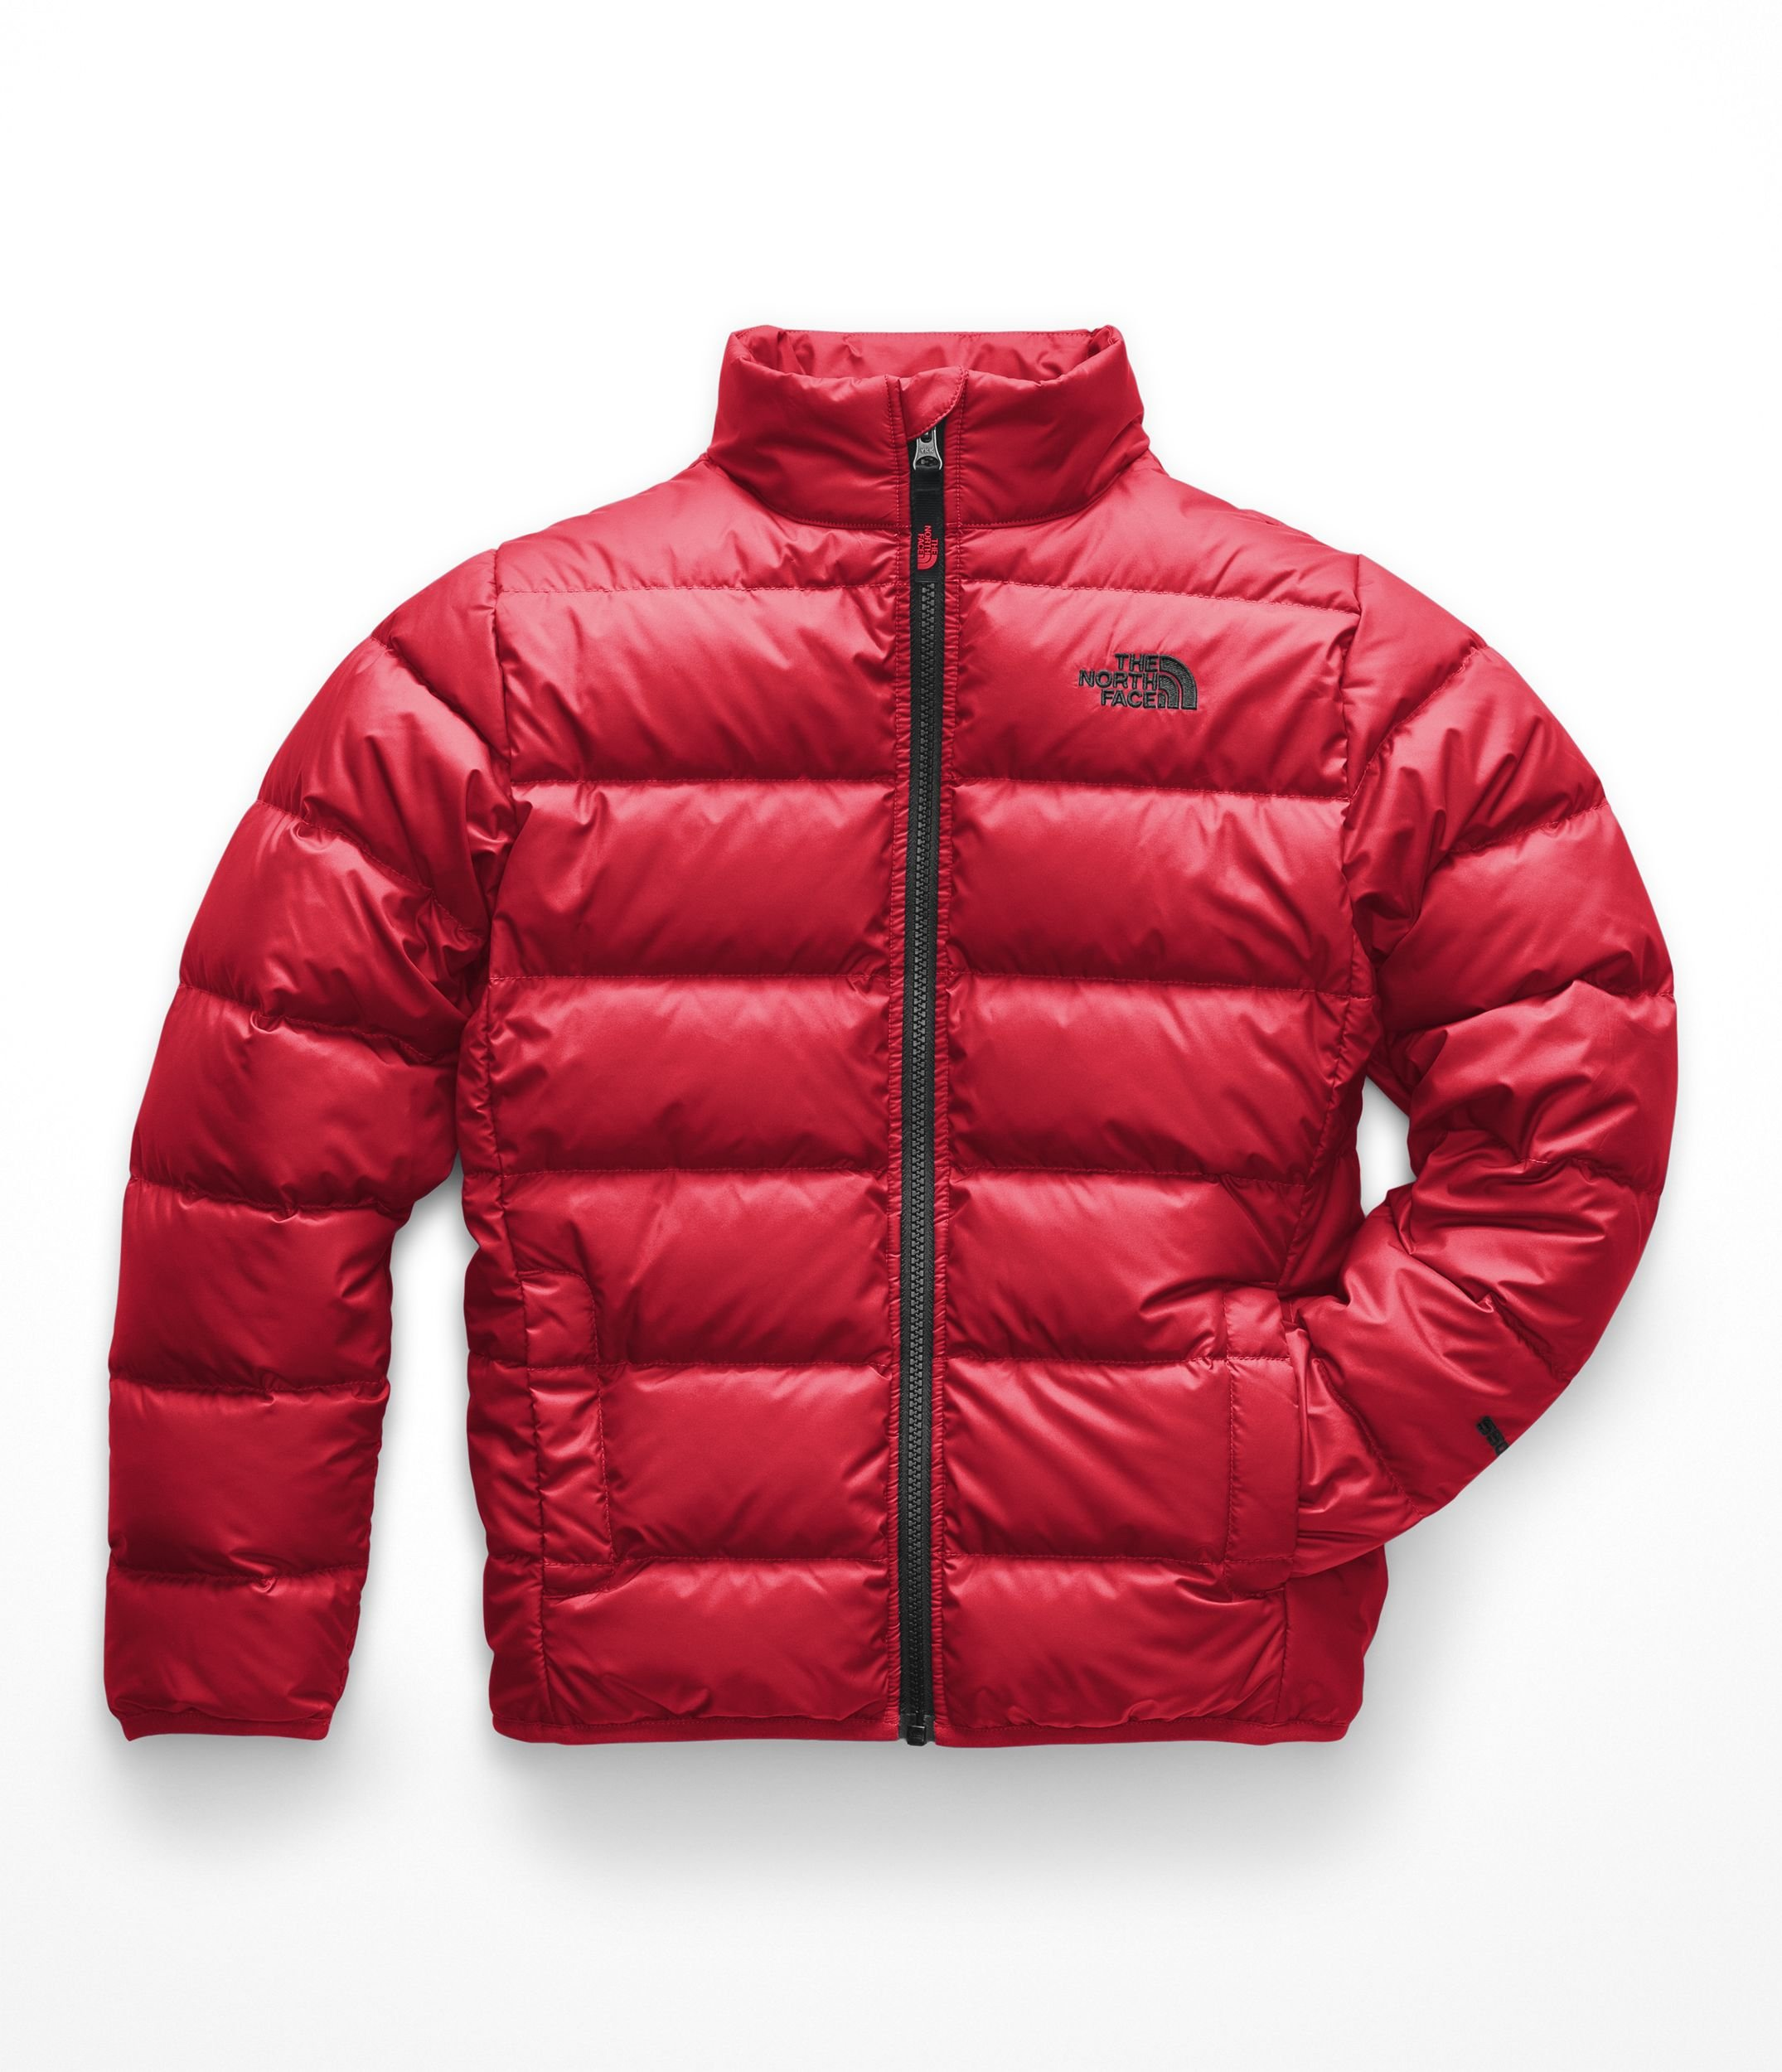 The North Face Boys Andes Jacket - TNF Red & TNF Black - XL by The North Face (Image #1)